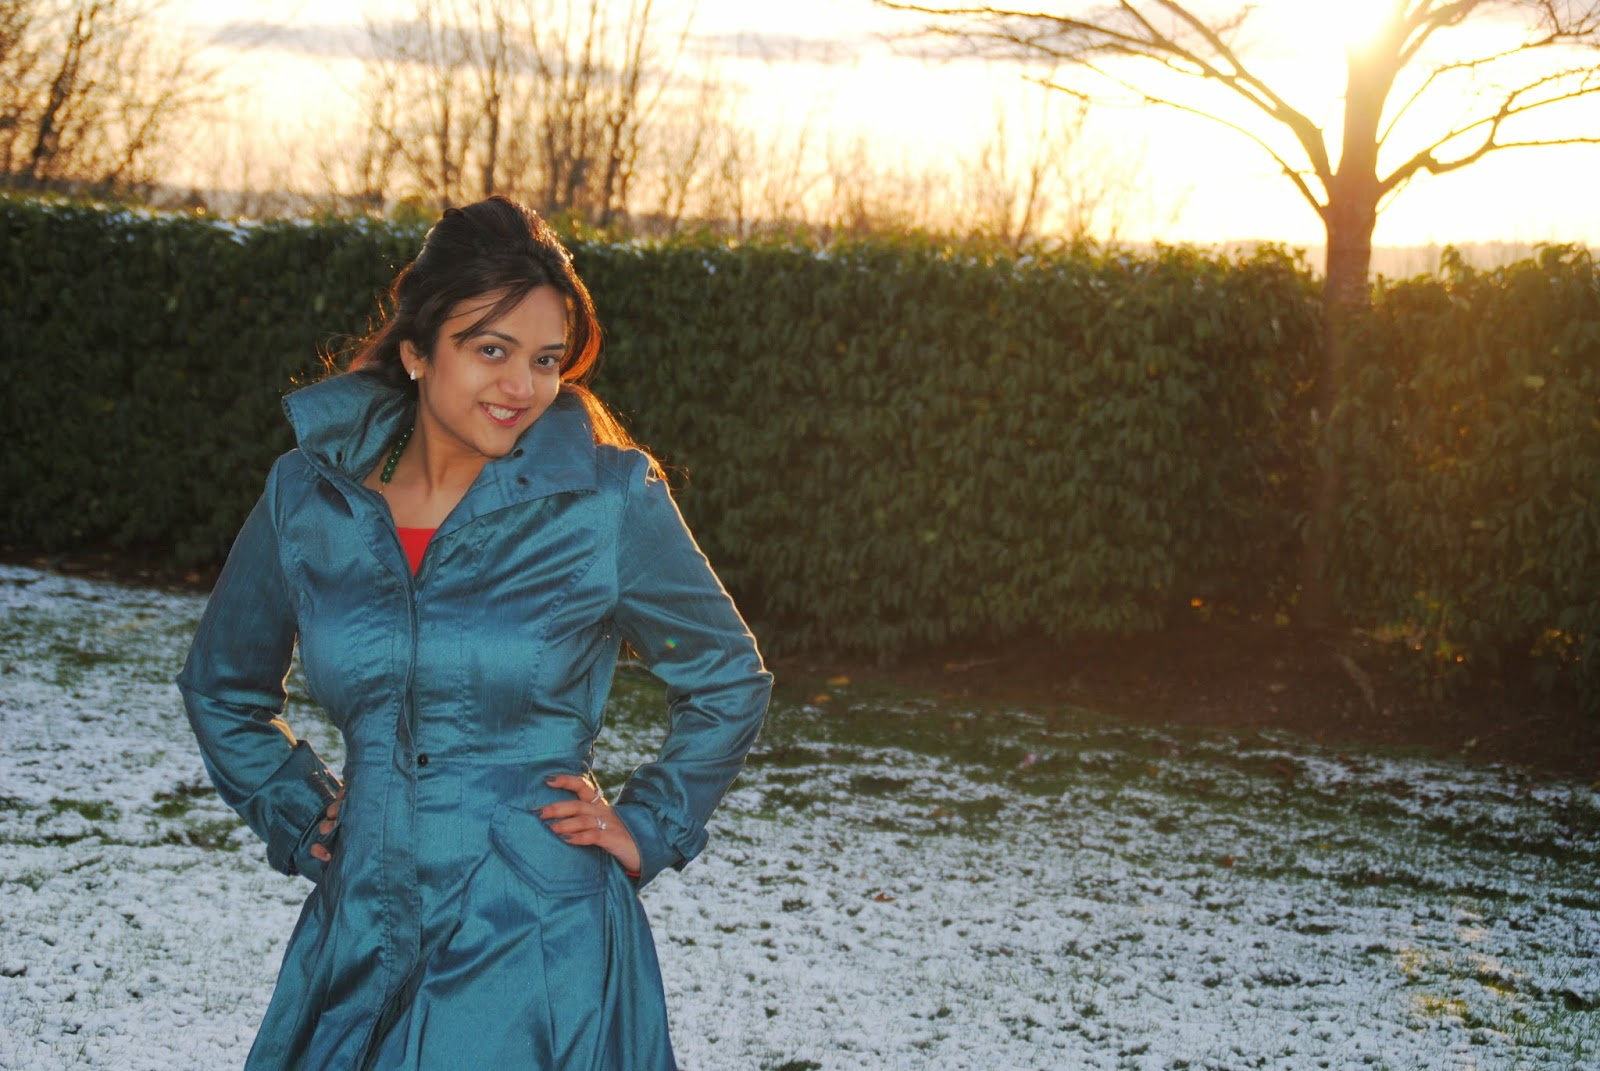 blue vintage coats,blue  trench coats, red dress with a blue coat, ananya kiran, seattle fashion blogger